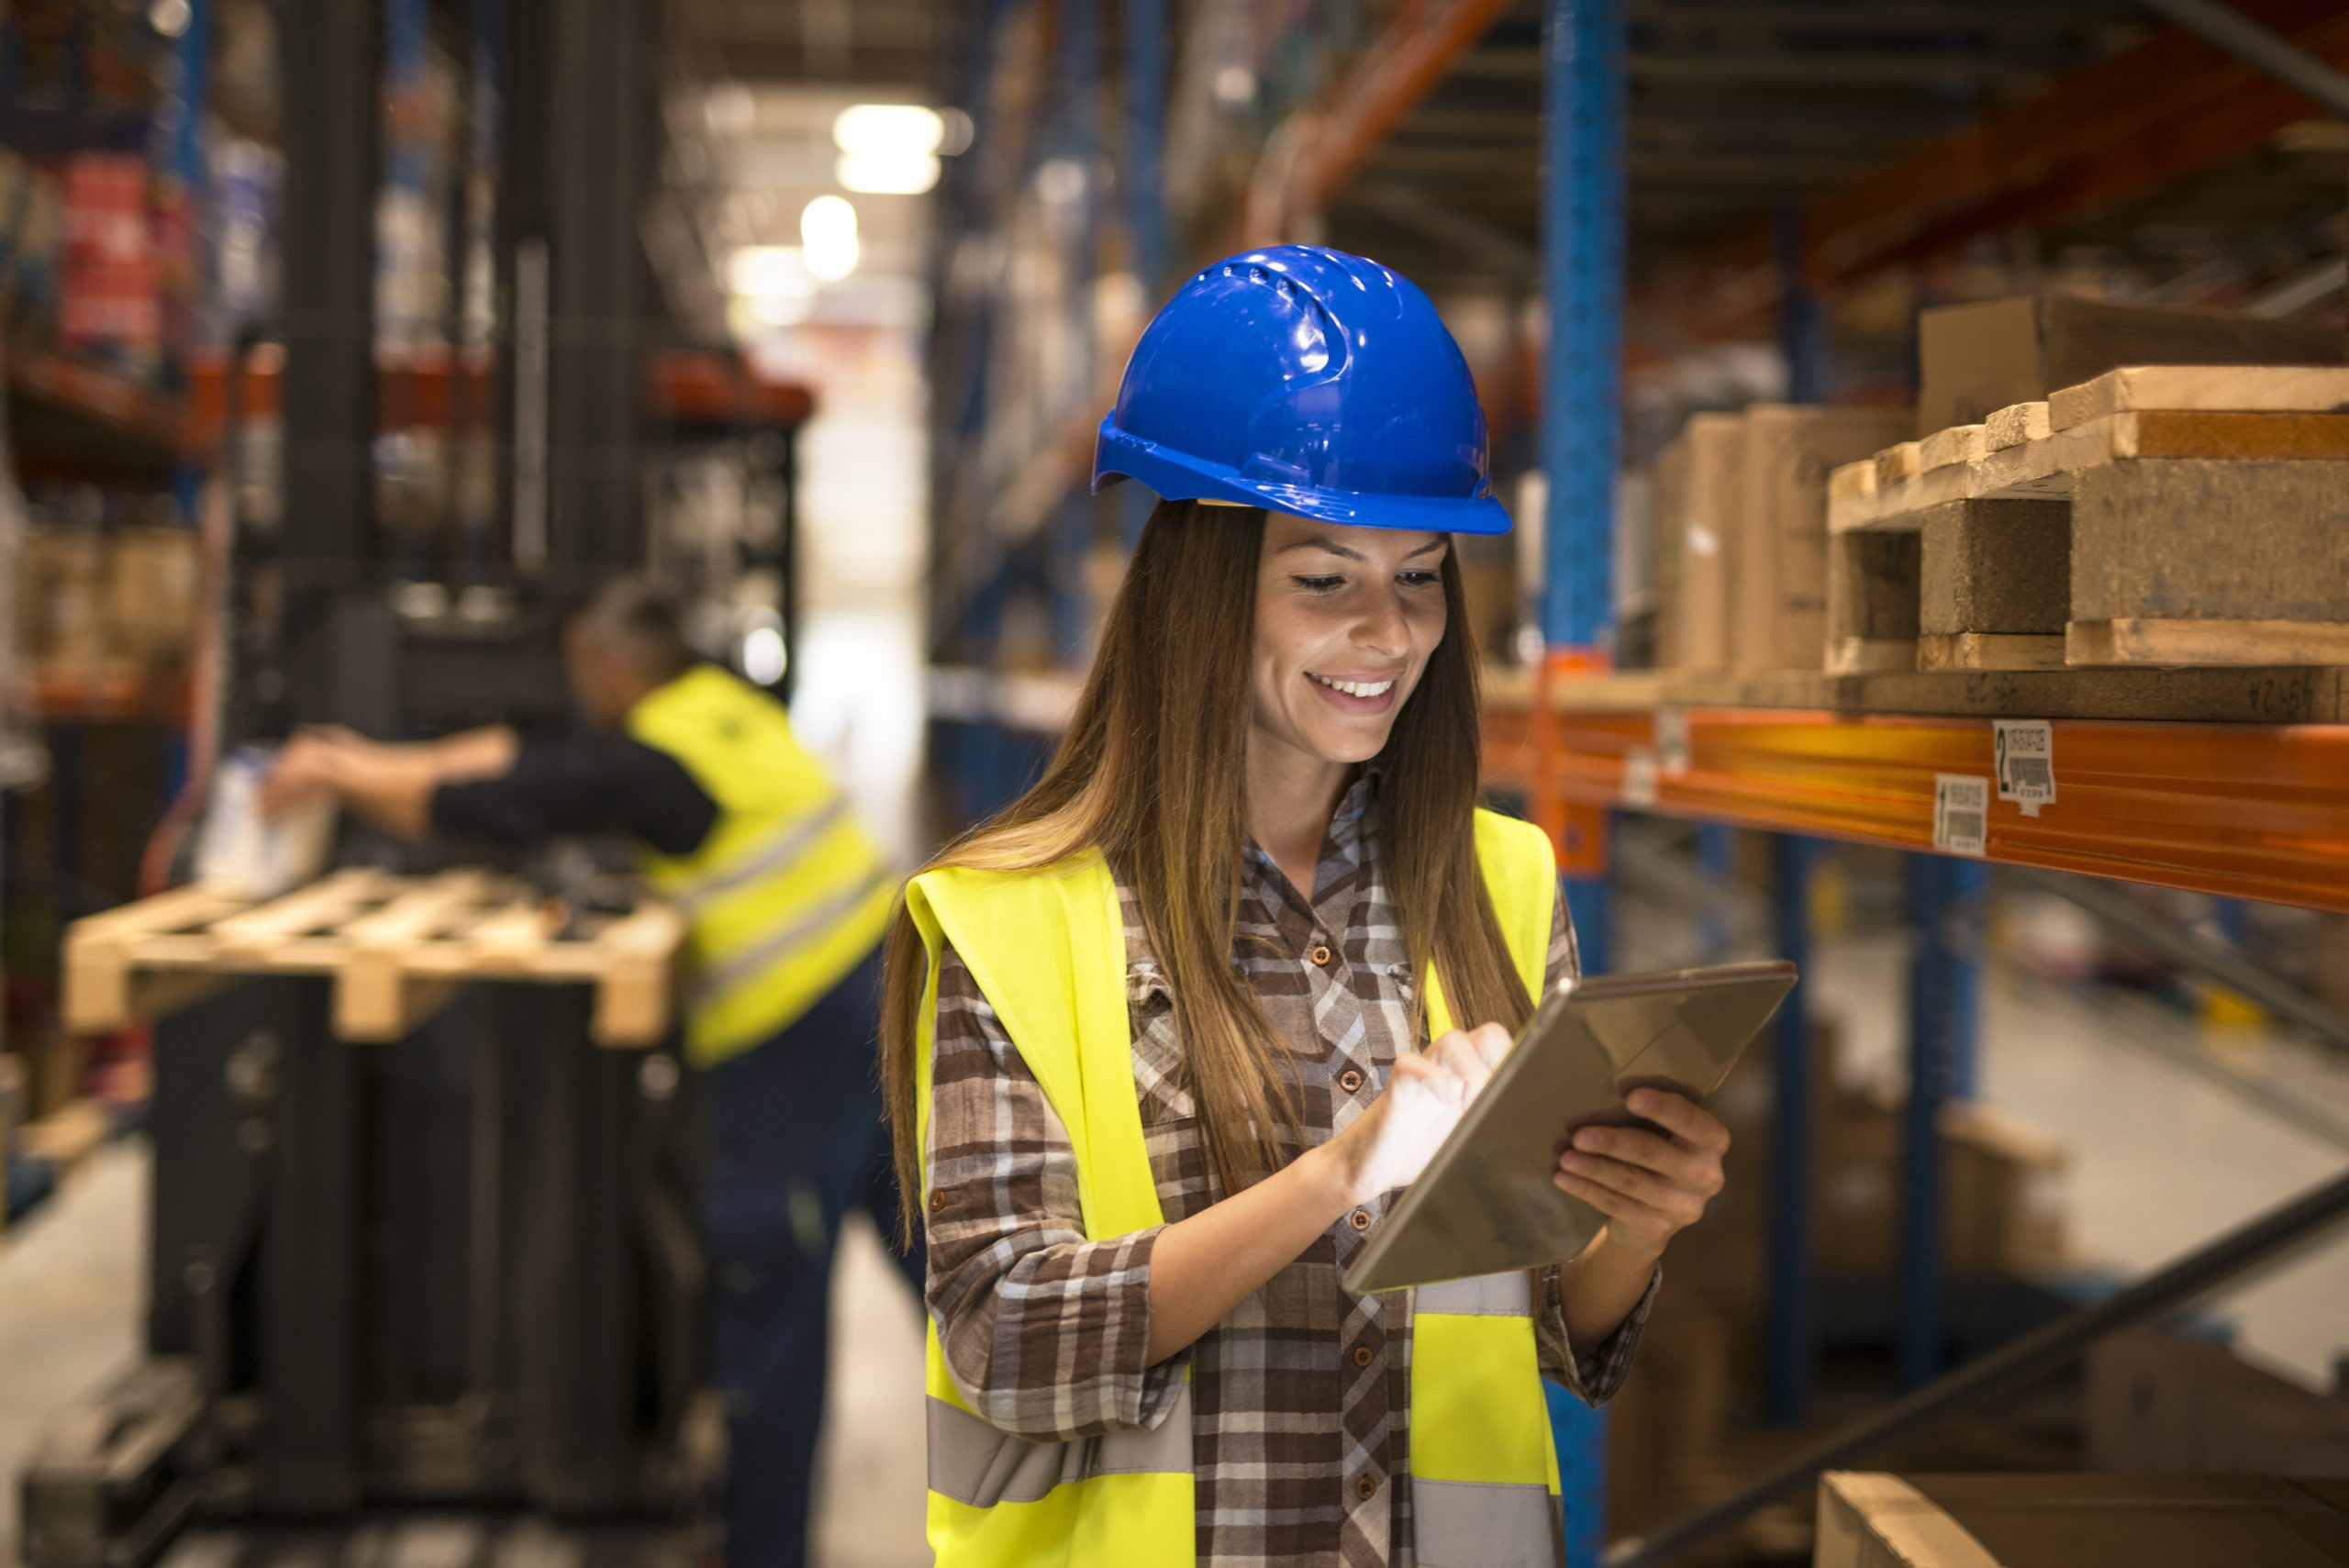 Female warehouse worker holding tablet checking inventory in distribution warehouse. Forklift in background.